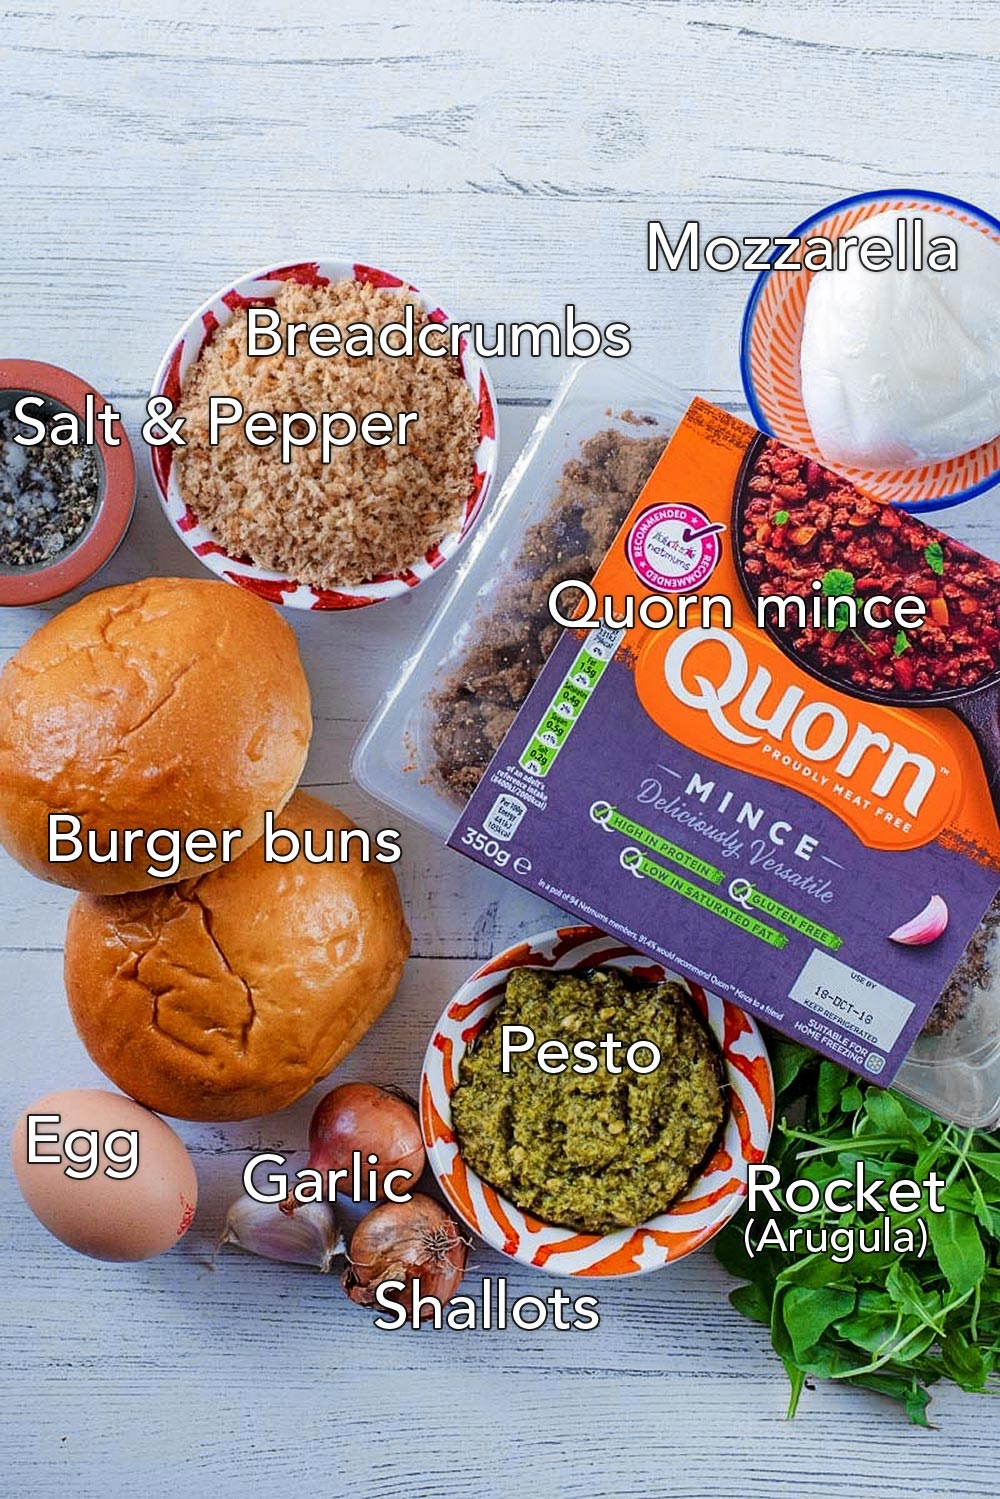 A pack of quorn mince, two burger buns, an egg, mozzarella, dish of breadcrumbs, salad, shallots and garlic. All on a wooden surface